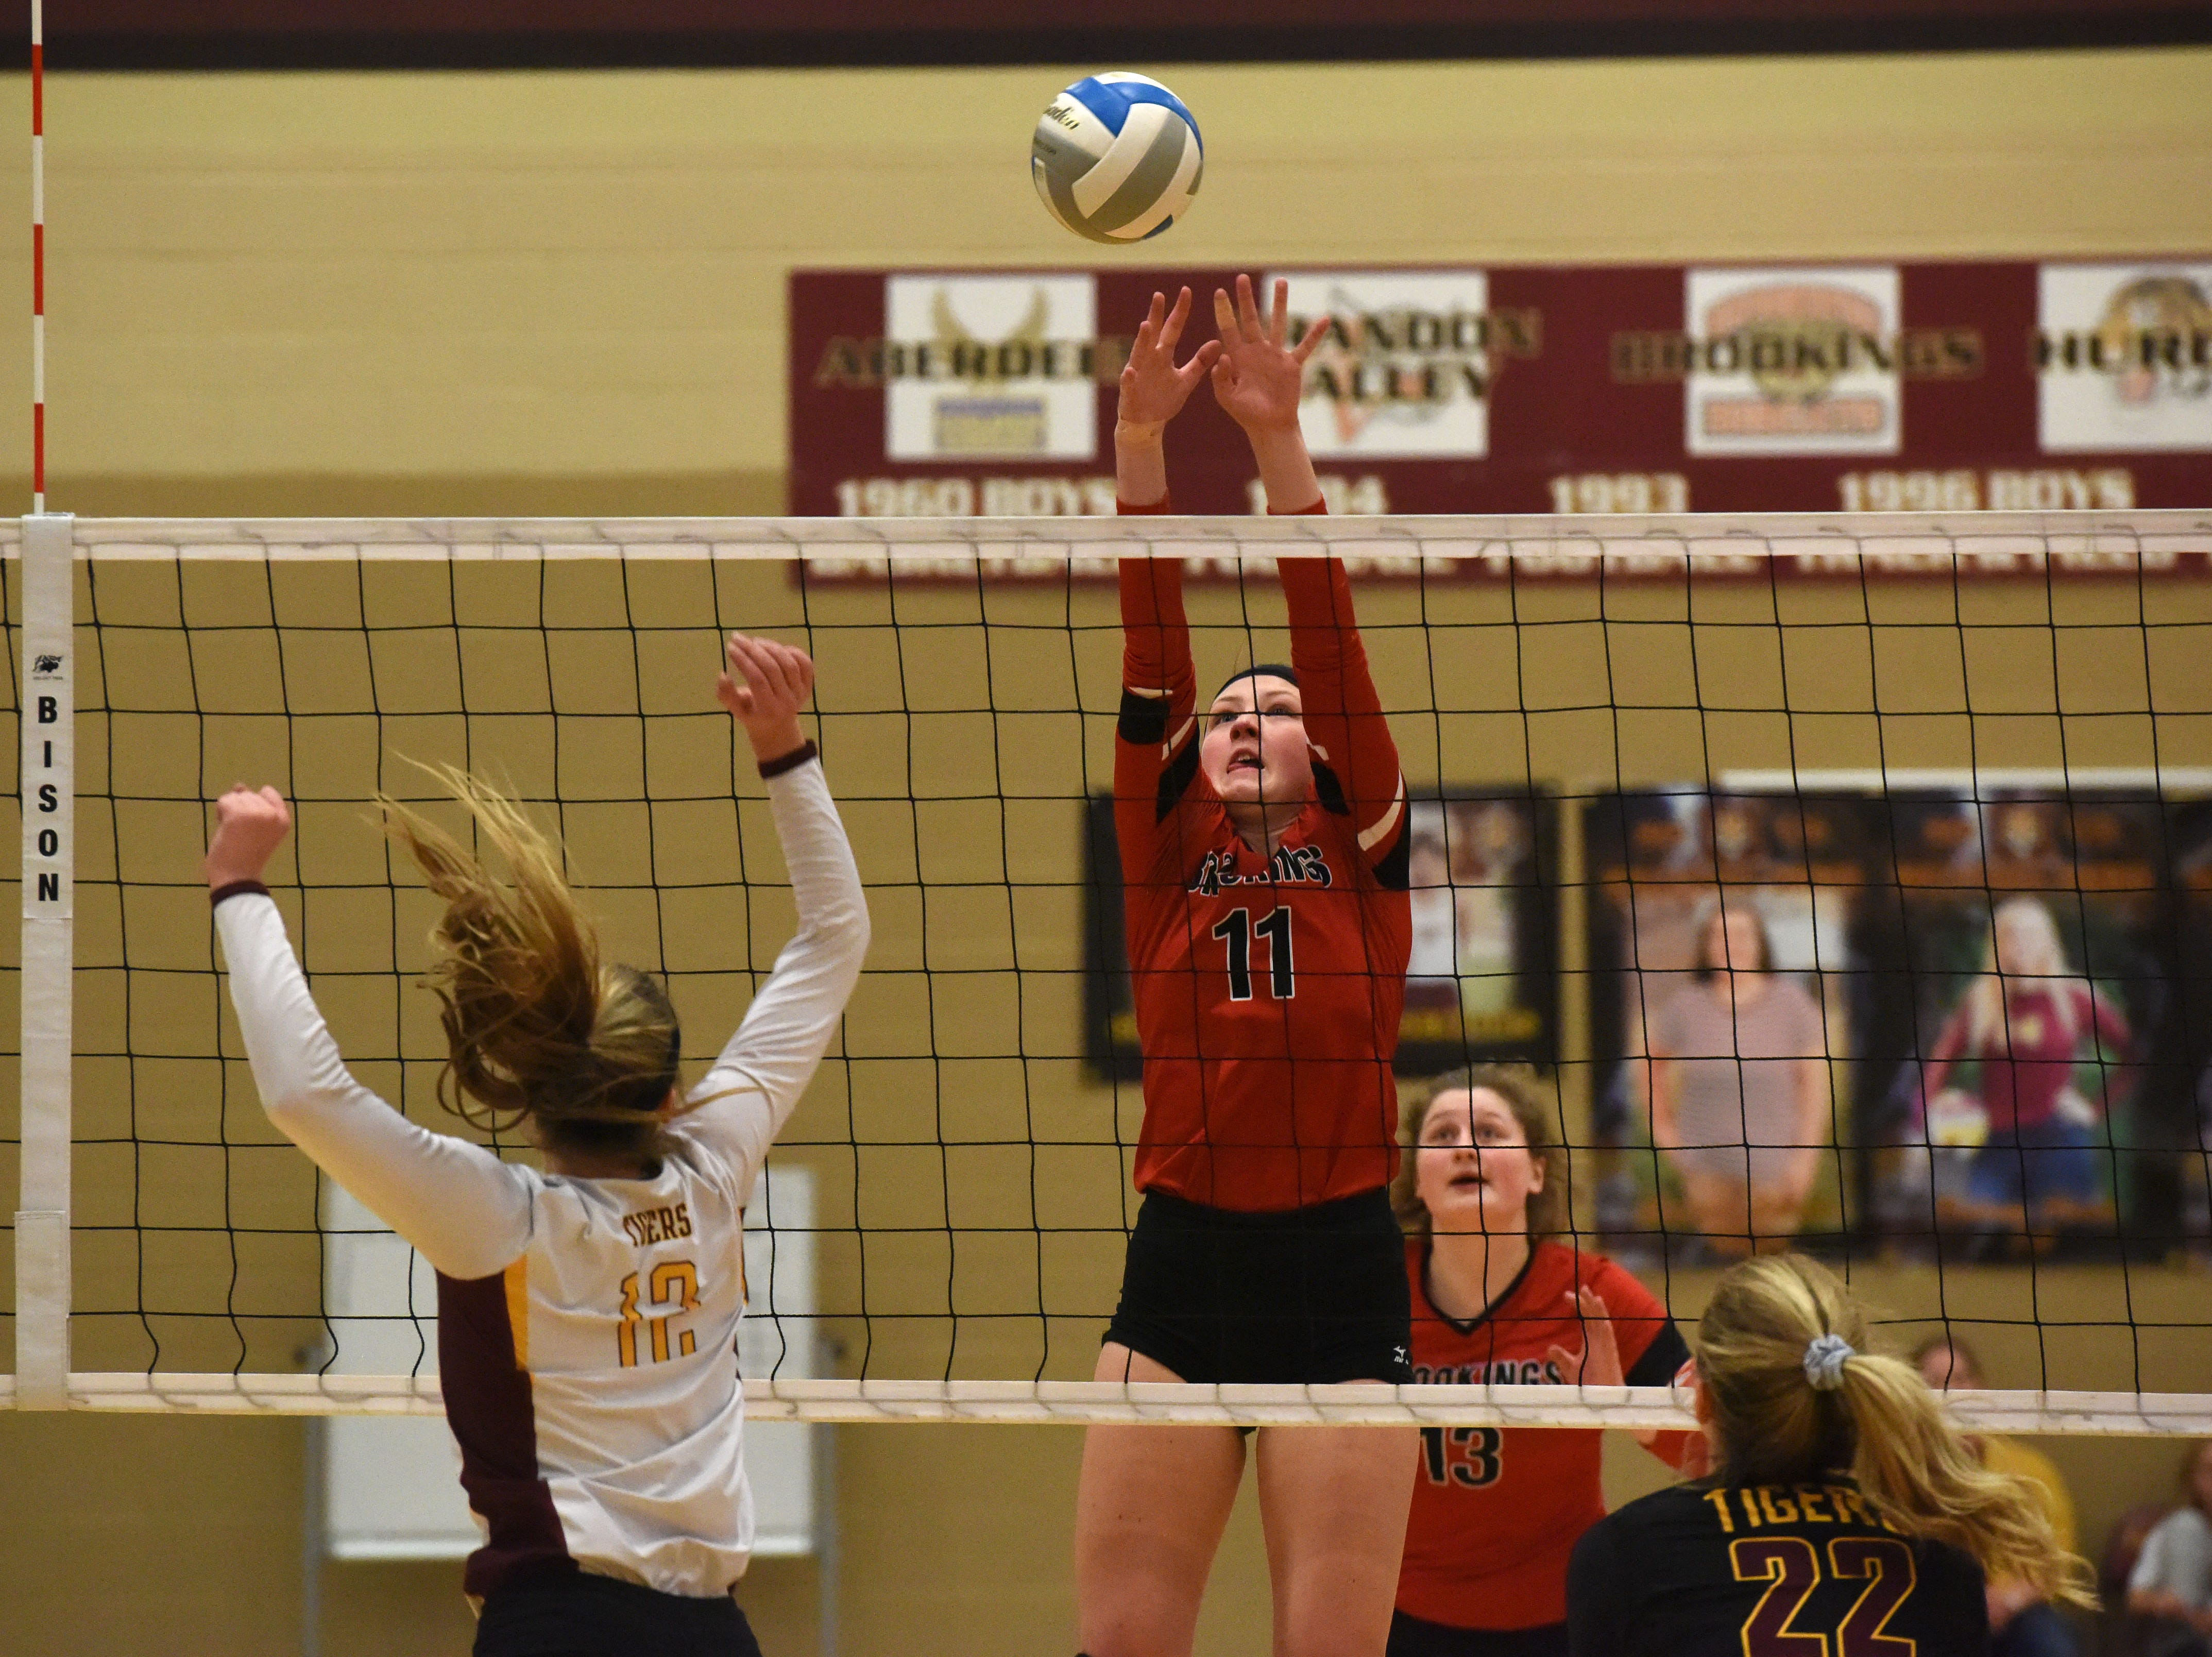 Brookings' Clarissa Miller (11) goes to block the ball during a match against Harrisburg Tuesday, Oct. 30, 2018 in Harrisburg, S.D.